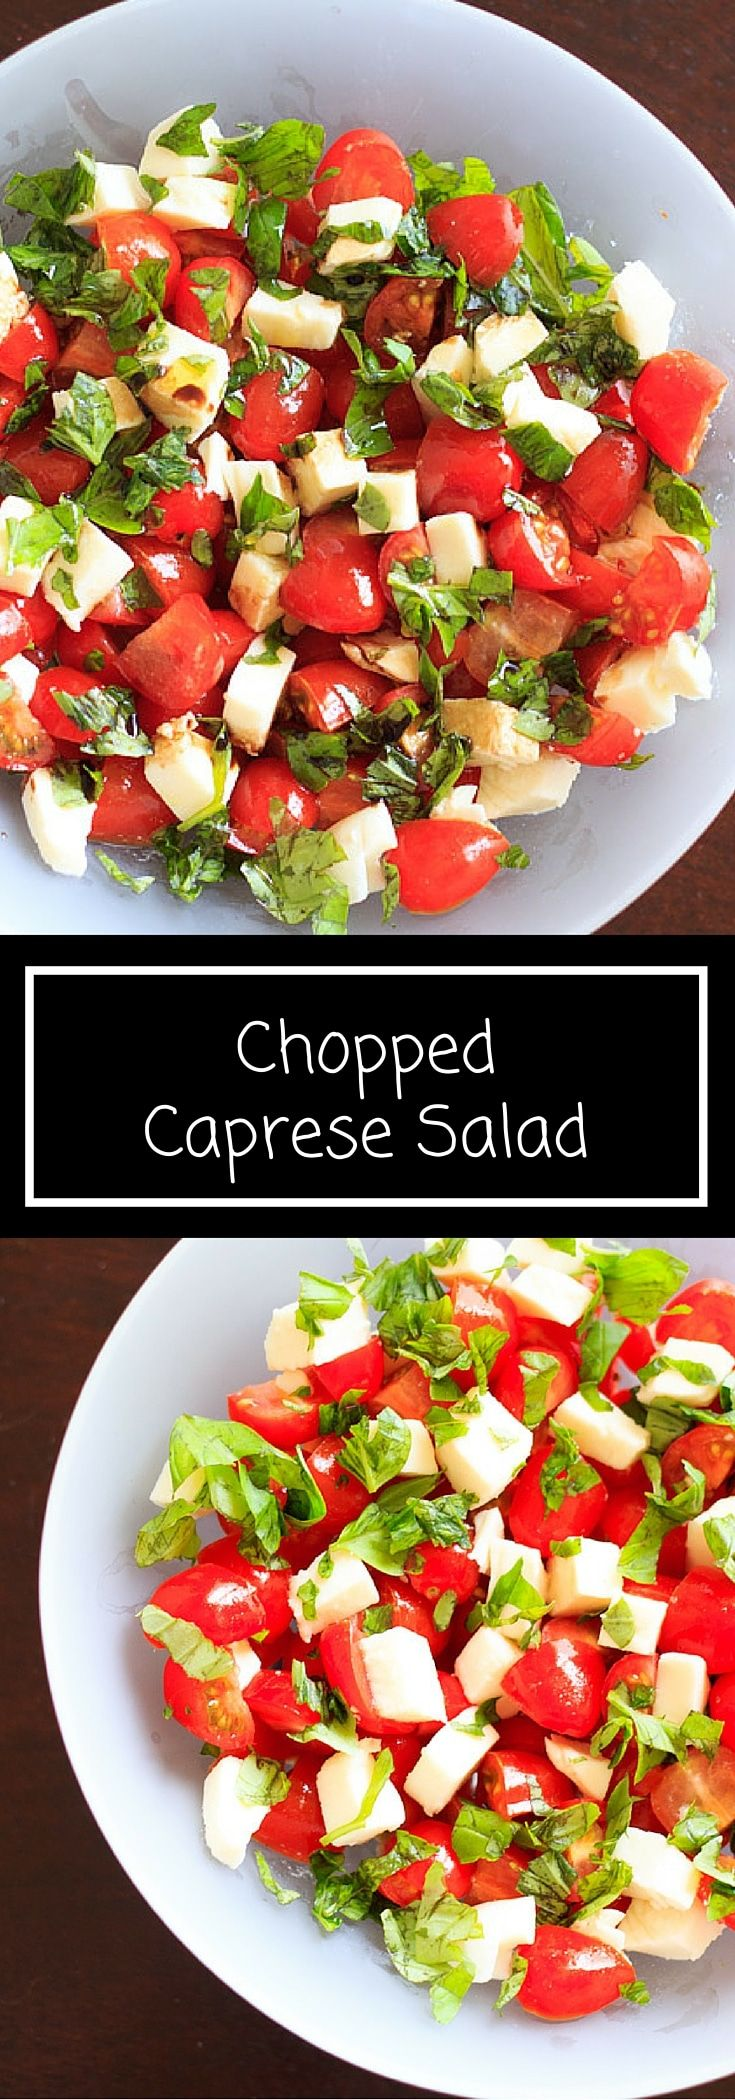 salad caprese chopped recipes appetizers easy appetizer recipe suzanne somers trialandeater fresh delicious any ingredients way gluten minutes salads enjoy